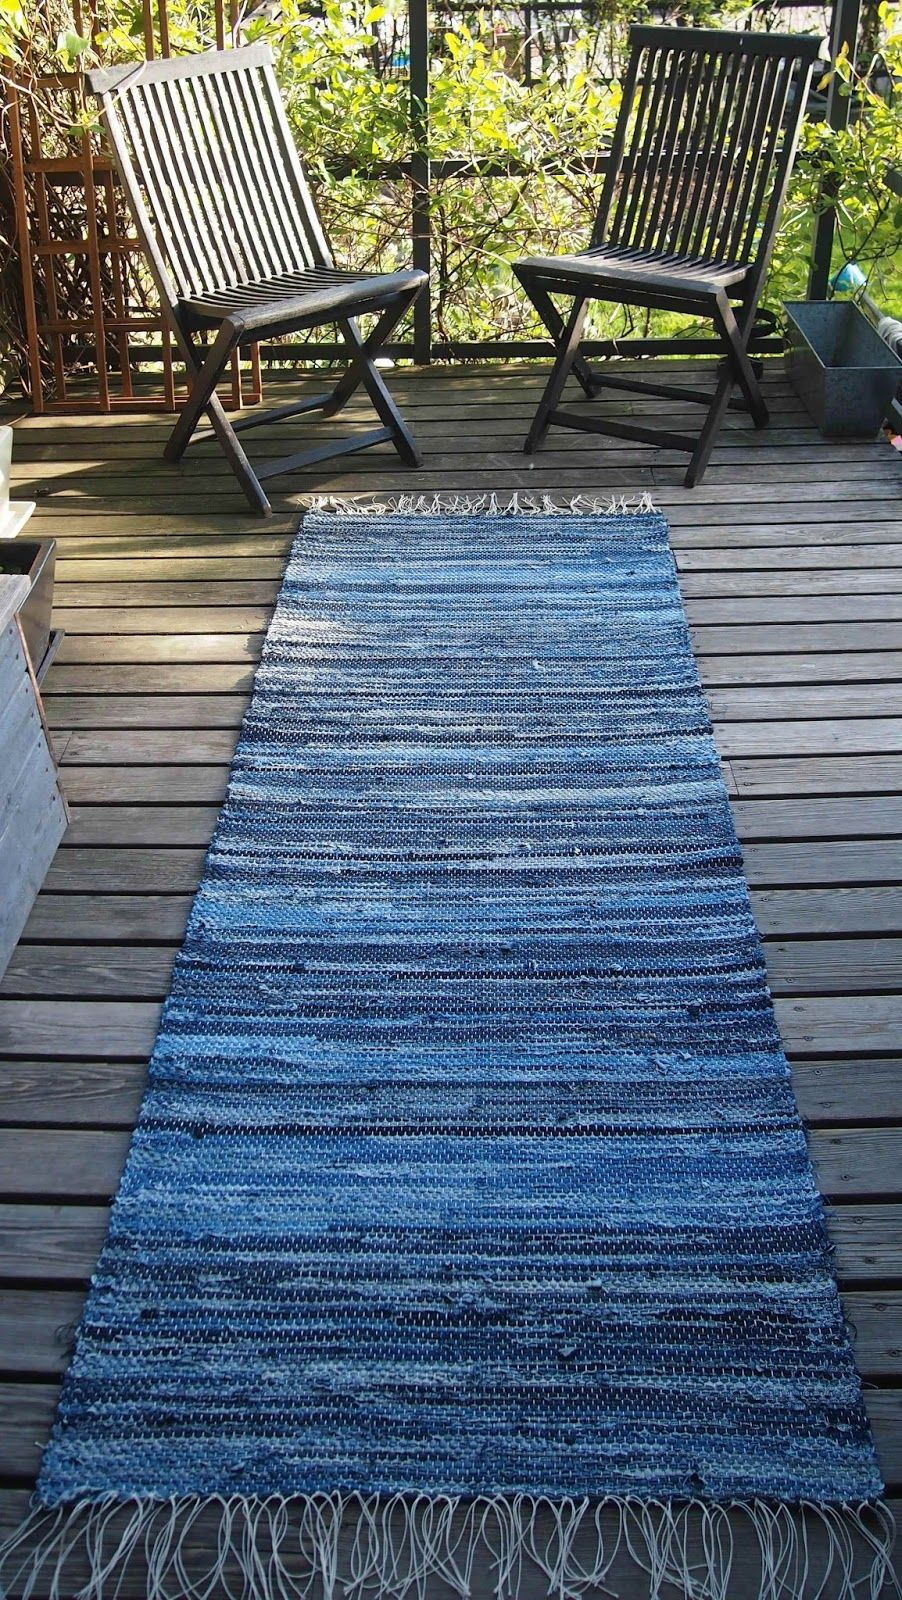 Woven Denim Rug Tutorial Not In English